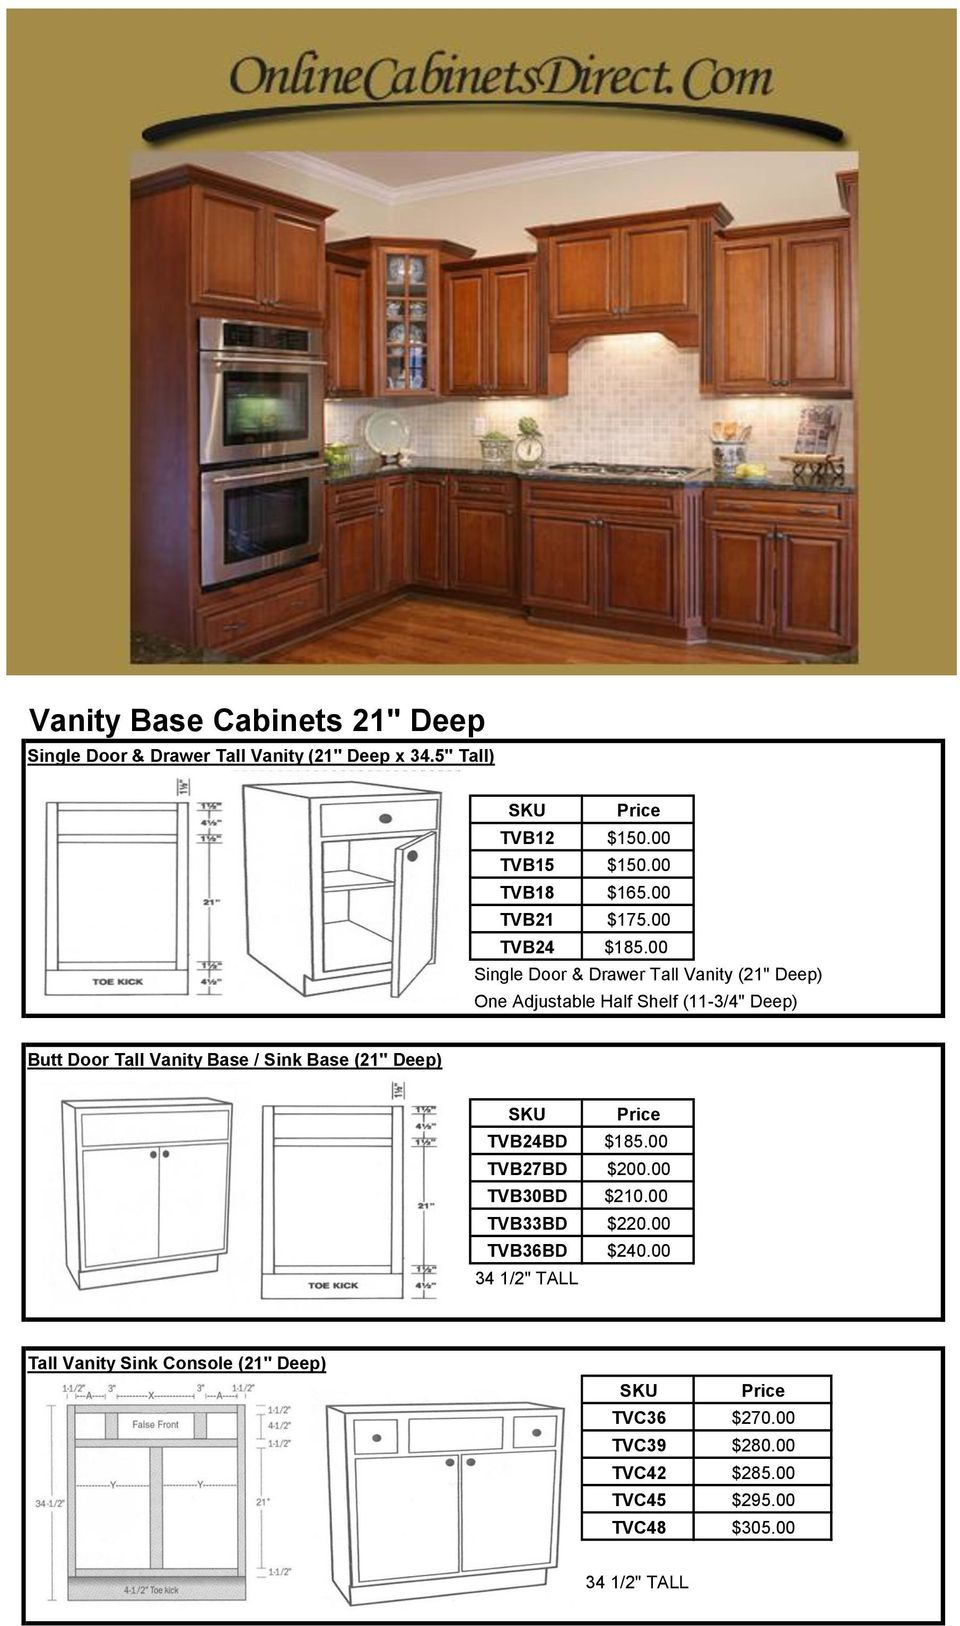 "00 Single Door & Drawer Tall Vanity (21"" Deep) One Adjustable Half Shelf (11-3/4"" Deep) Butt Door Tall Vanity Base / Sink"